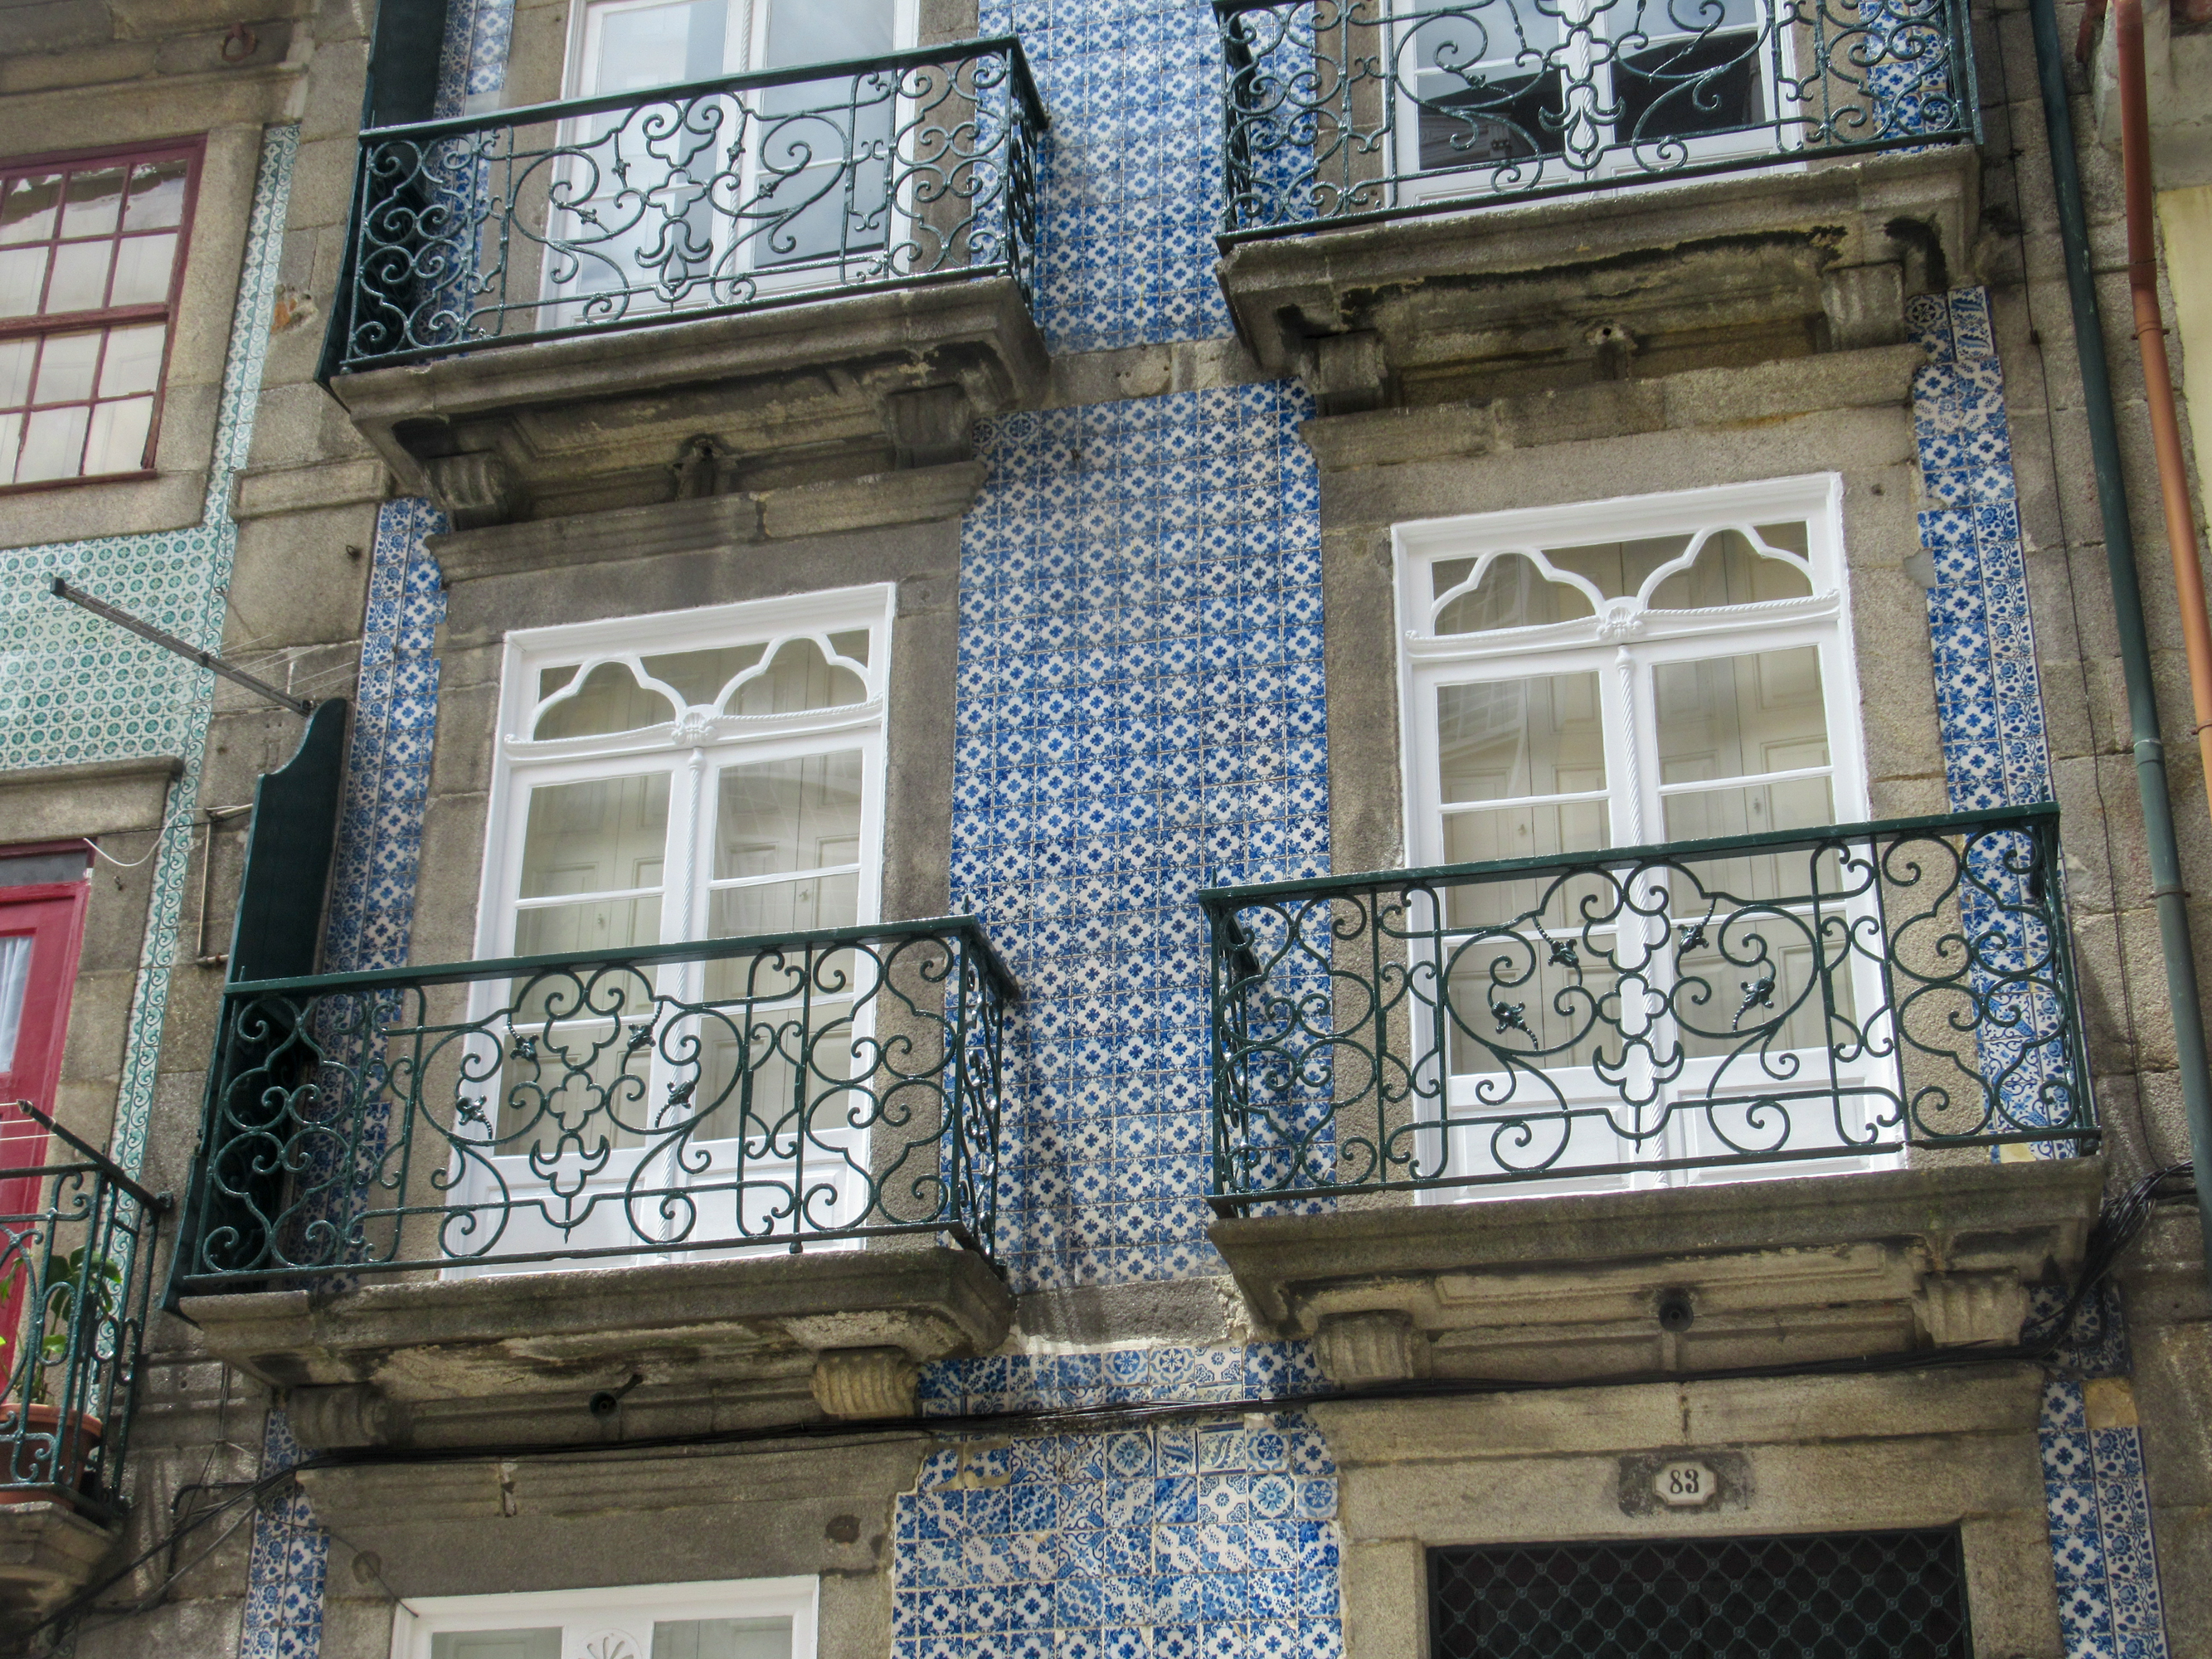 Blue tiles on the side of a building in Porto, Portugal.